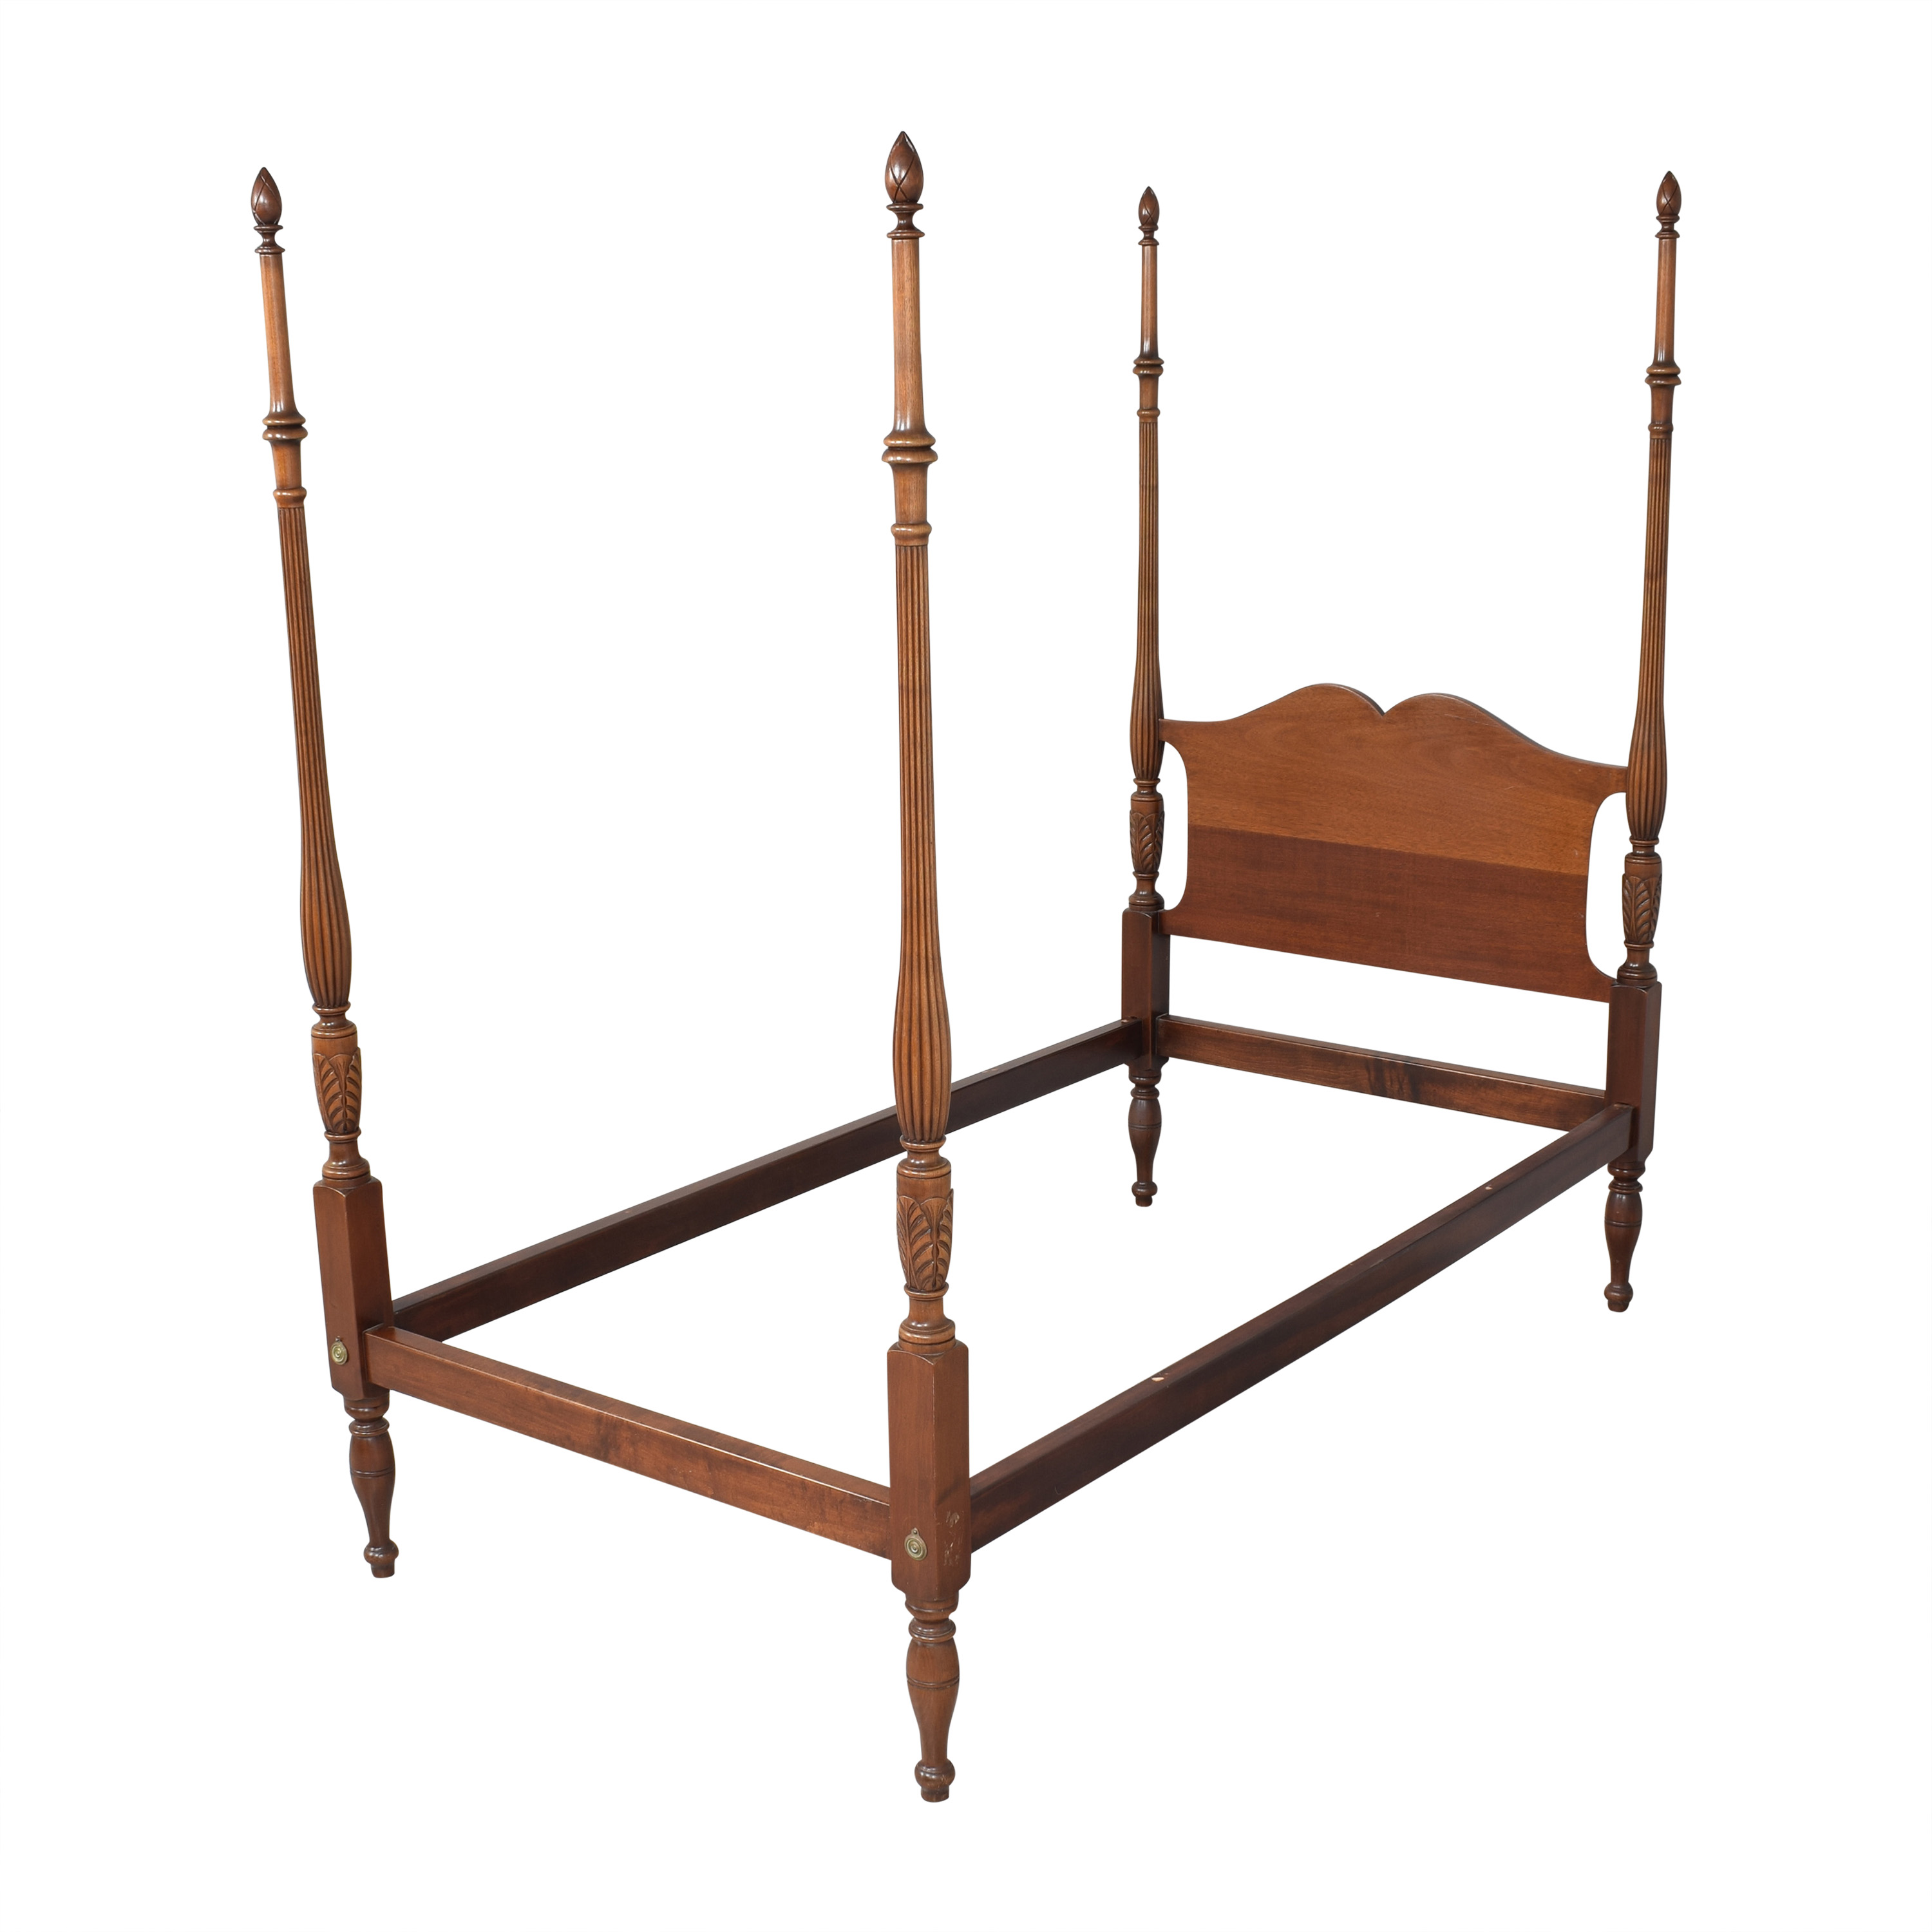 Four Poster Twin Bed for sale